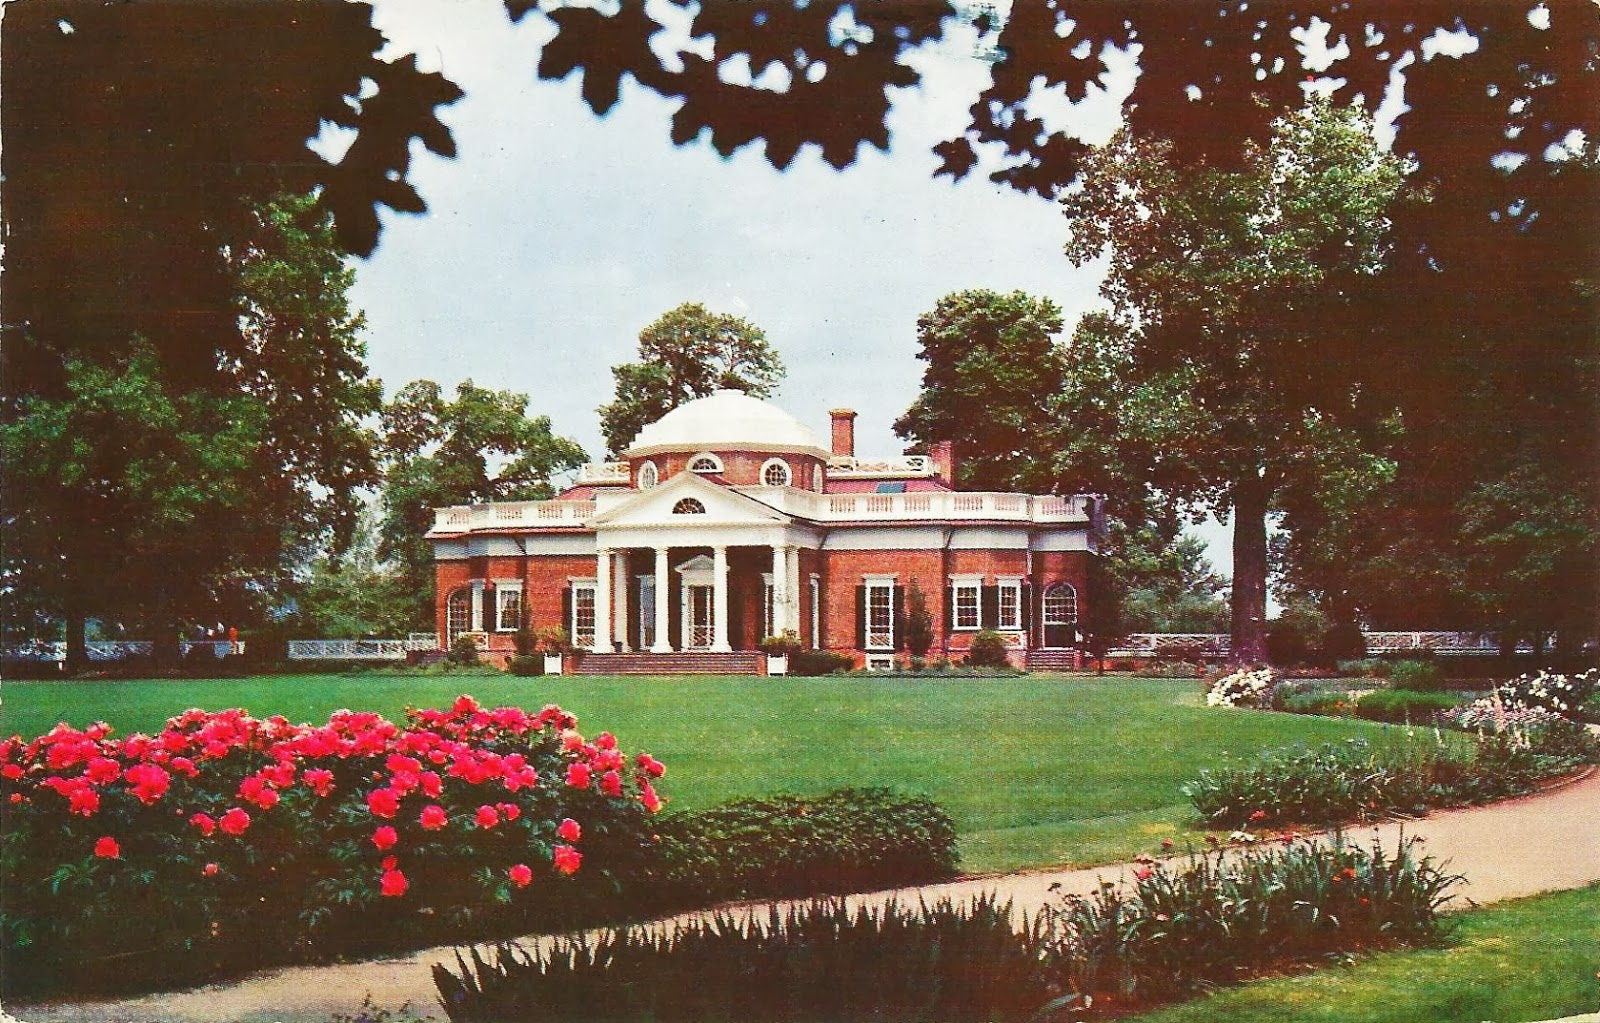 Postcards On My Wall Monticello And The University Of. Graduation Photography Near Me. Weekly Work Schedule Template Pdf. Free Business Cards Template Word. Cute Graduation Cap Ideas. Create Free Car Invoice Template. Poster Design Ideas. Books For High School Graduates. Personal Finance Plan Template